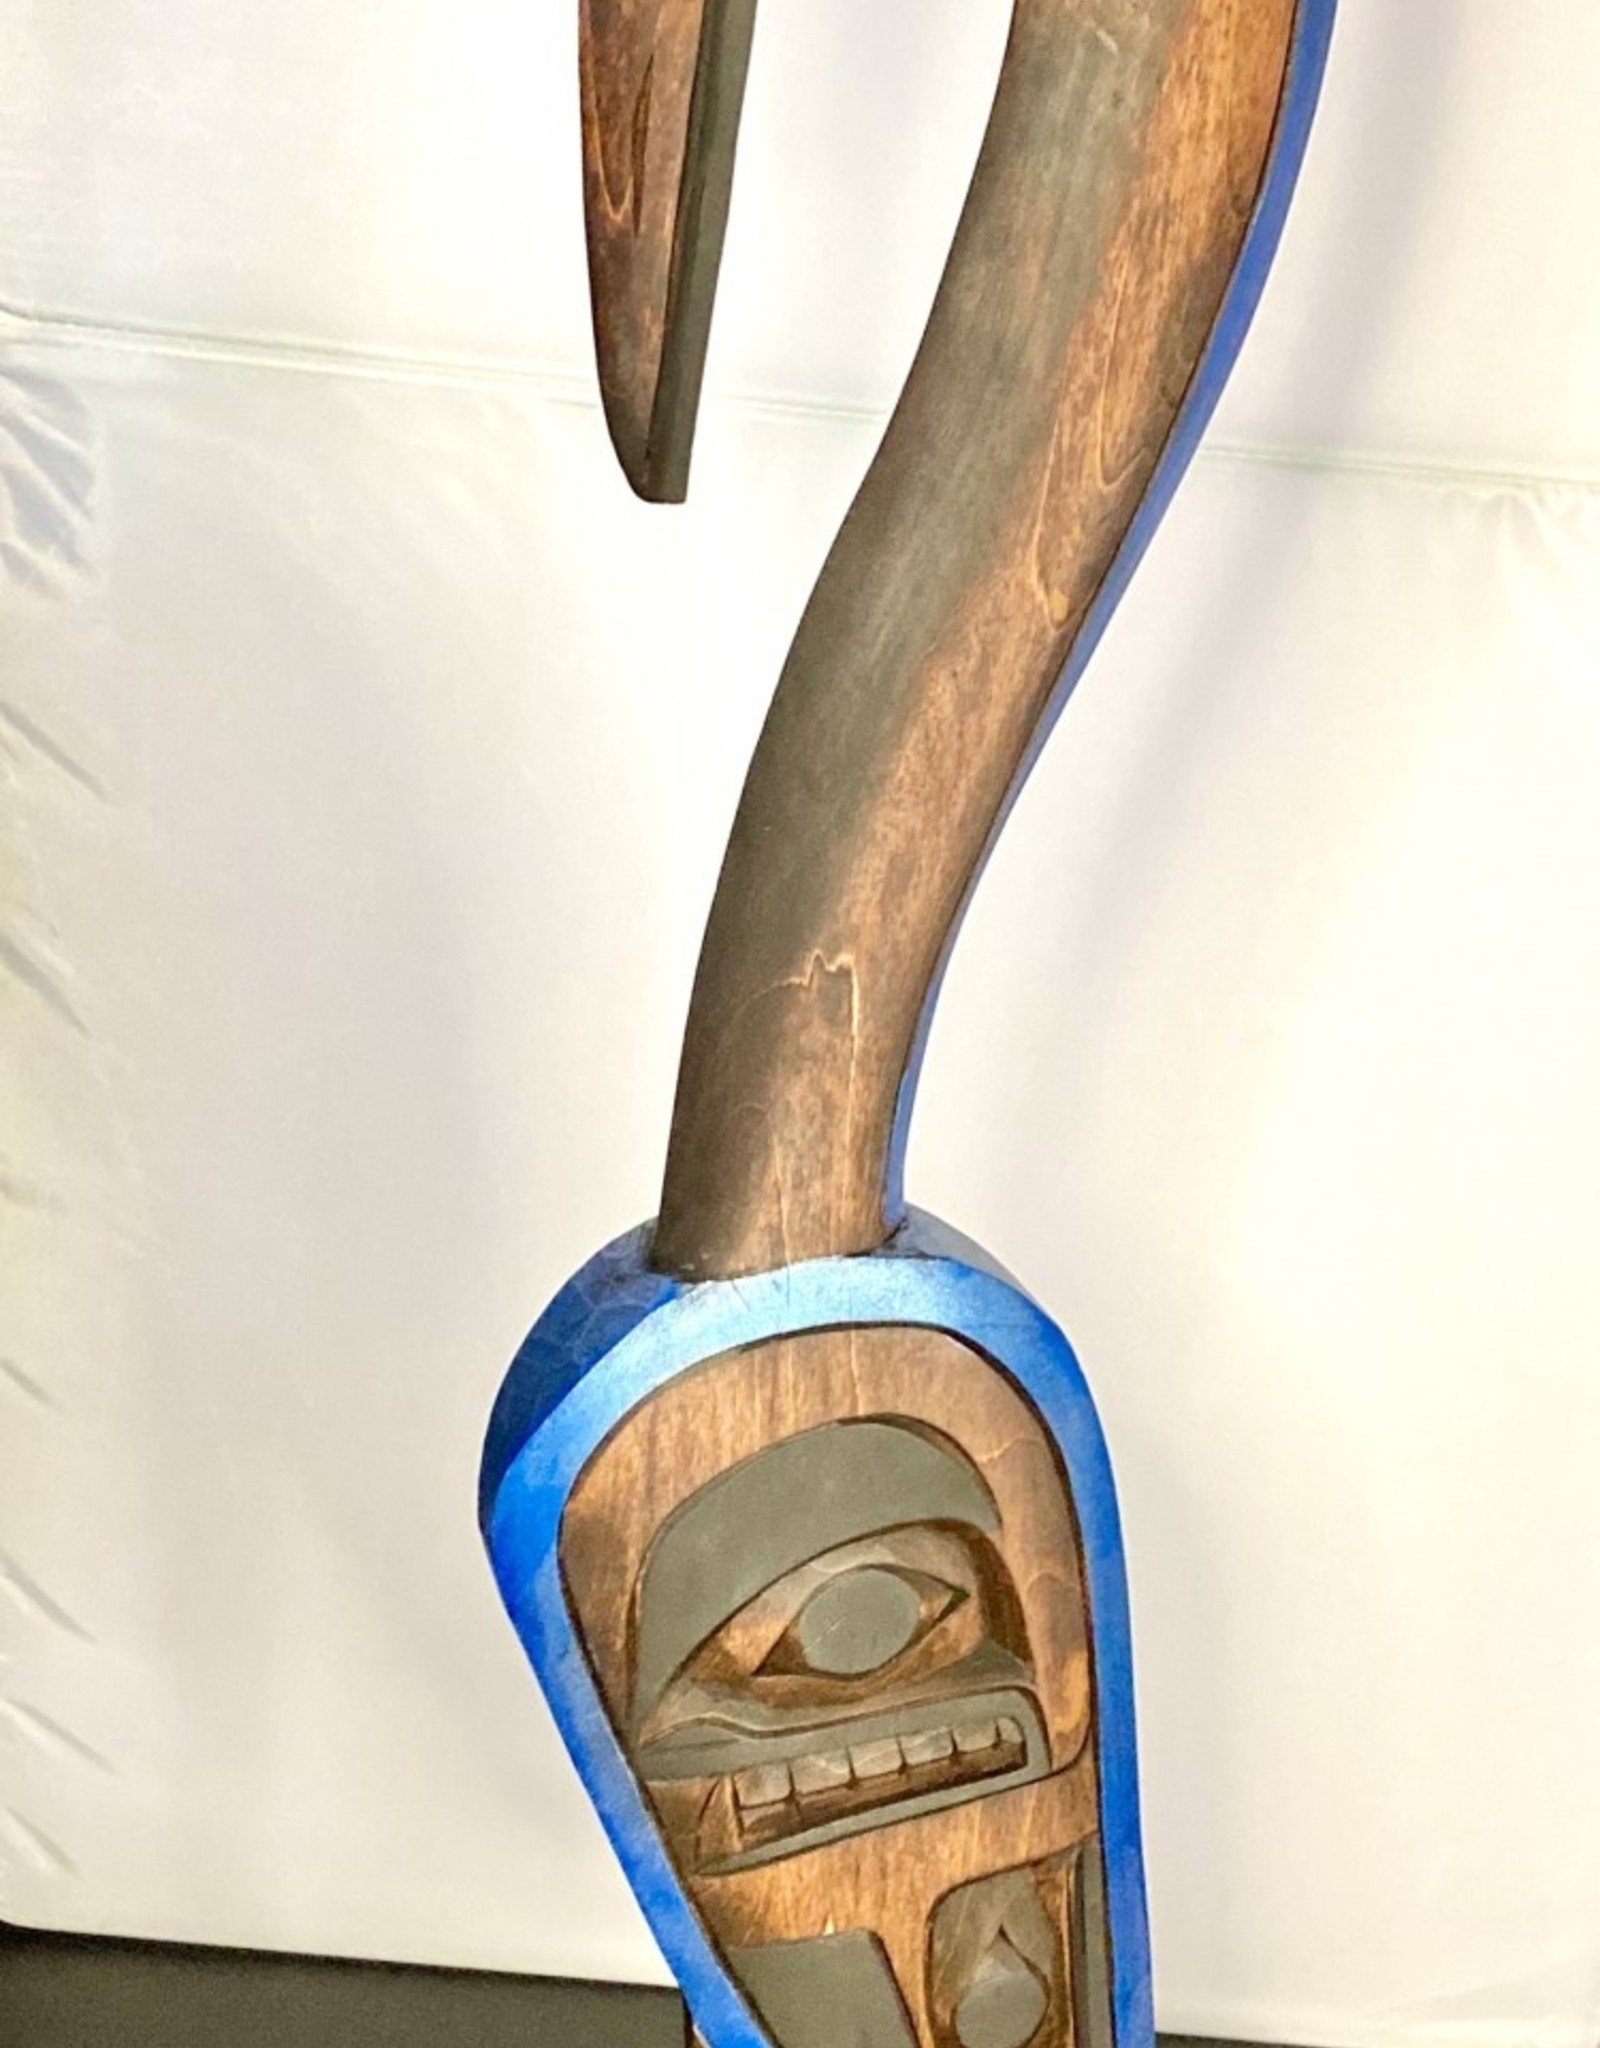 Native Carving of a Crane on a Salmon